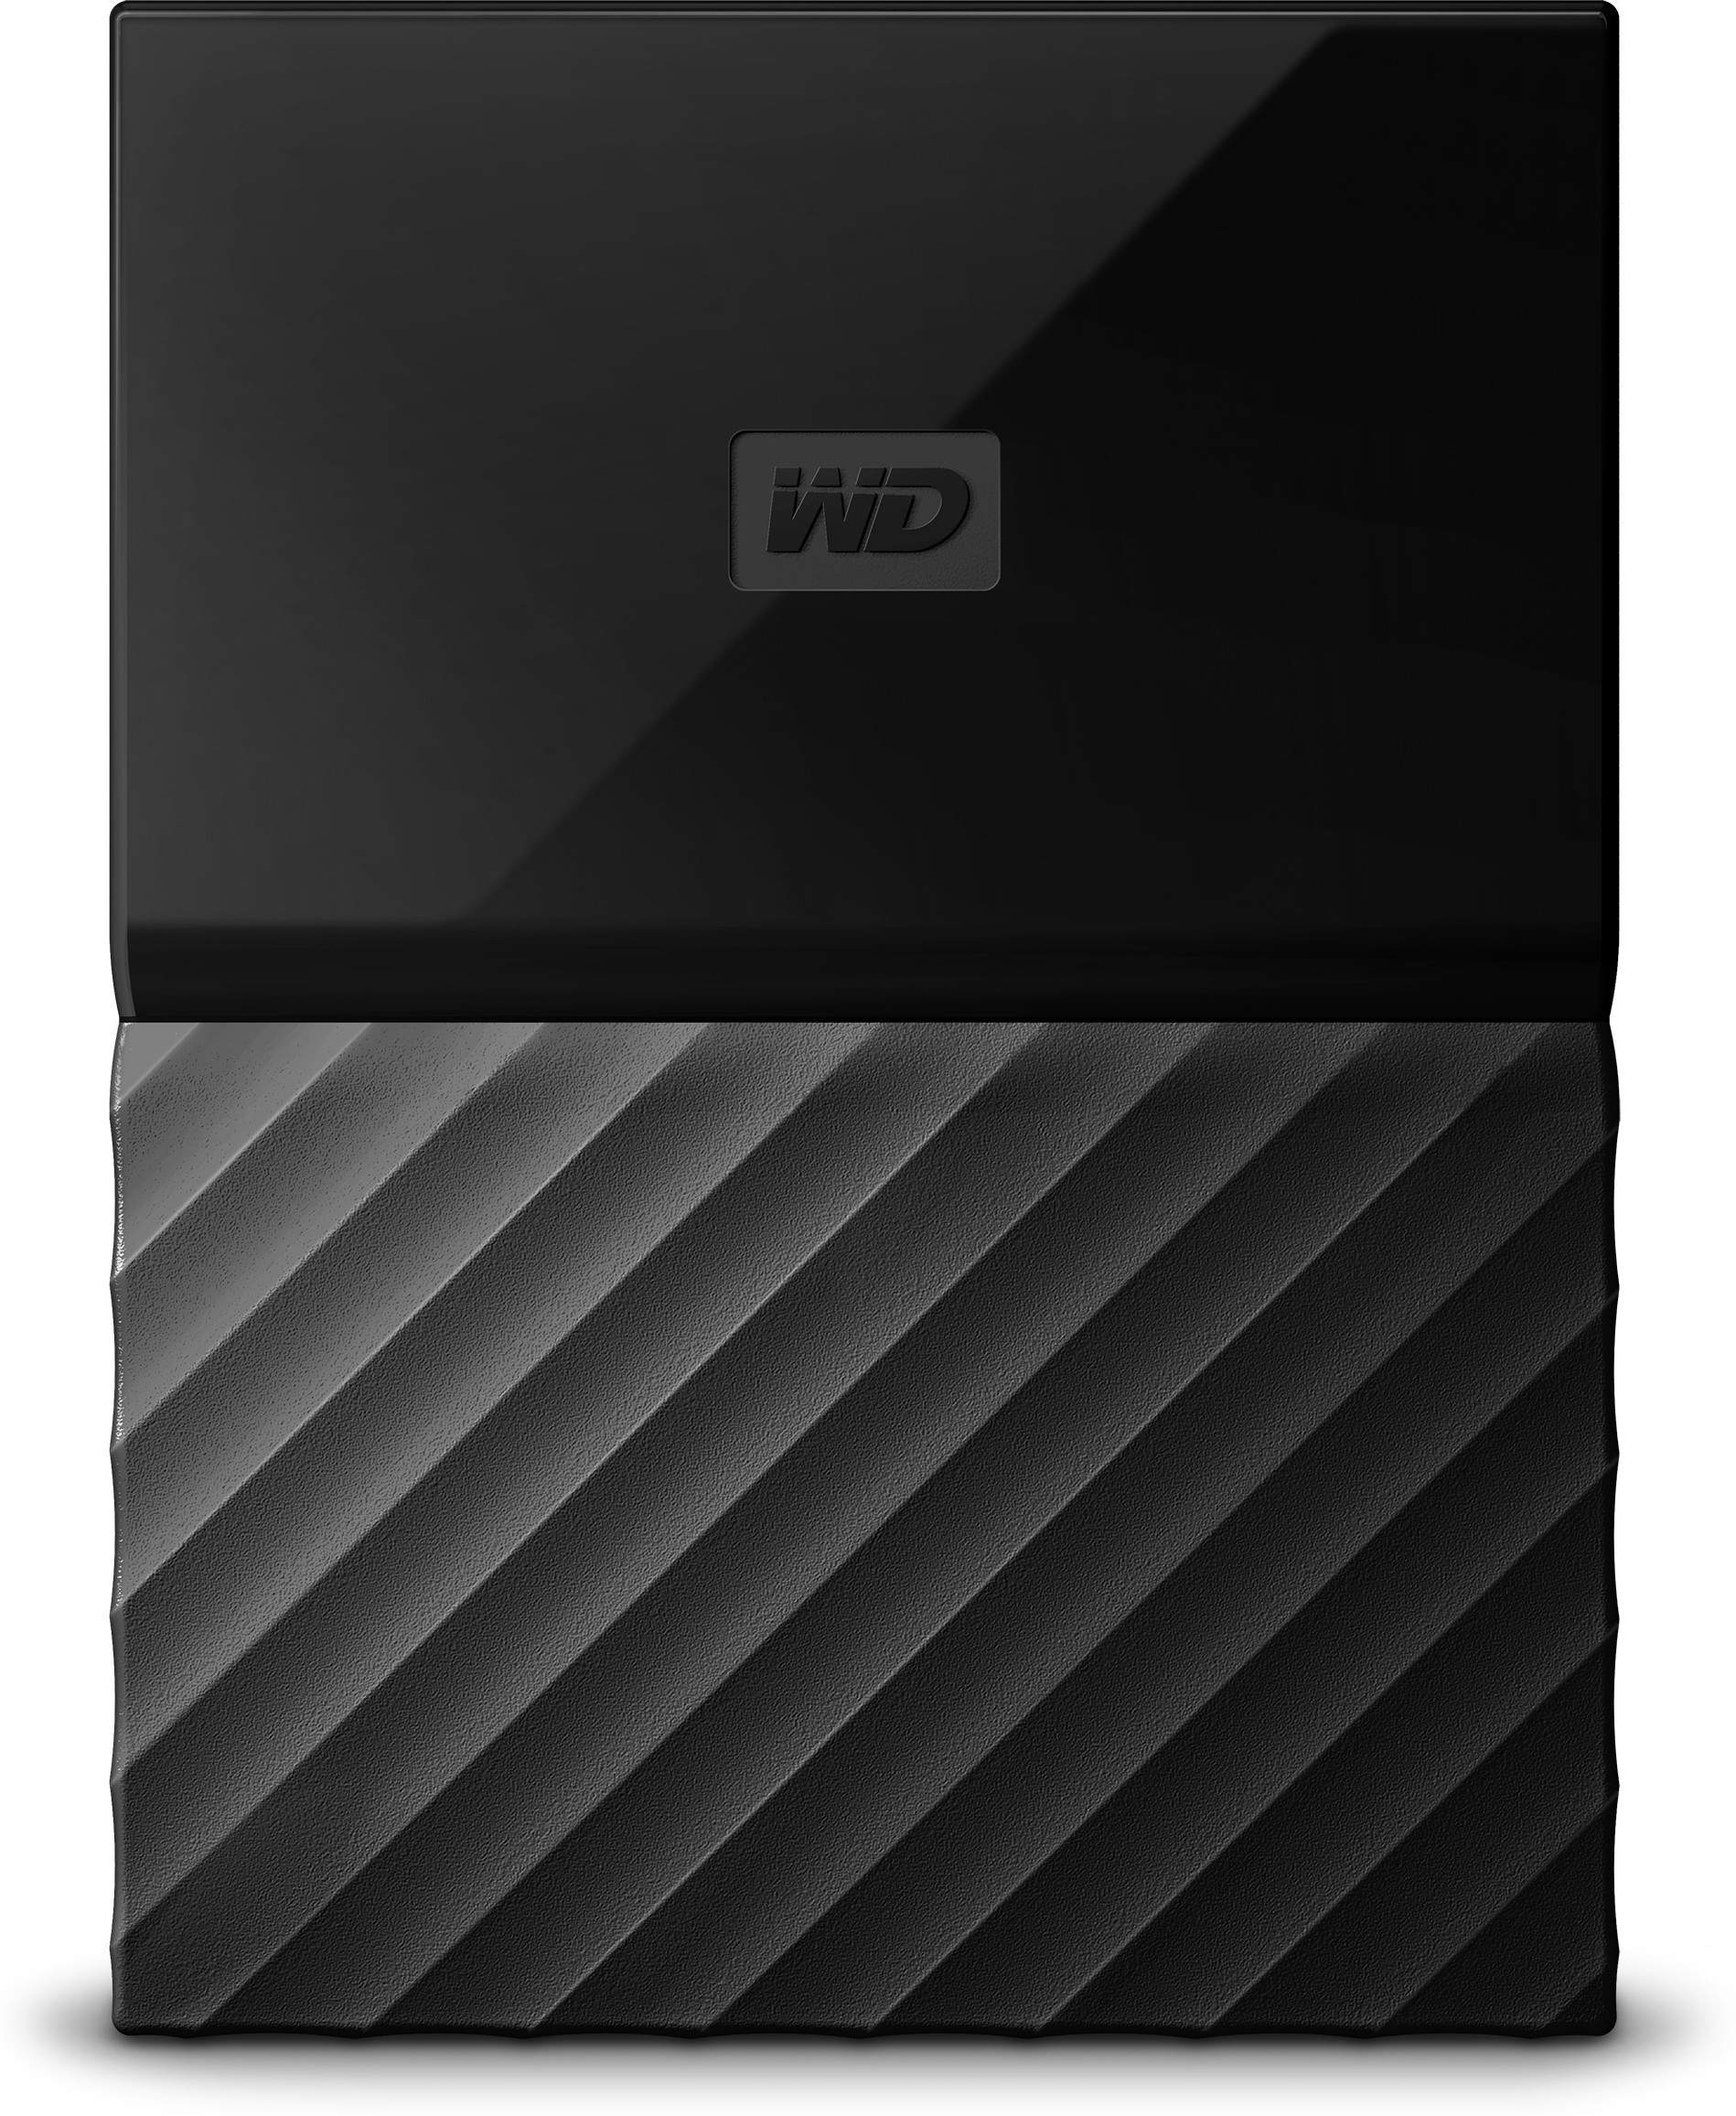 WD My Passport 2 TB Wired External Hard Disk Drive(Black)   Computer Storage  (WD)